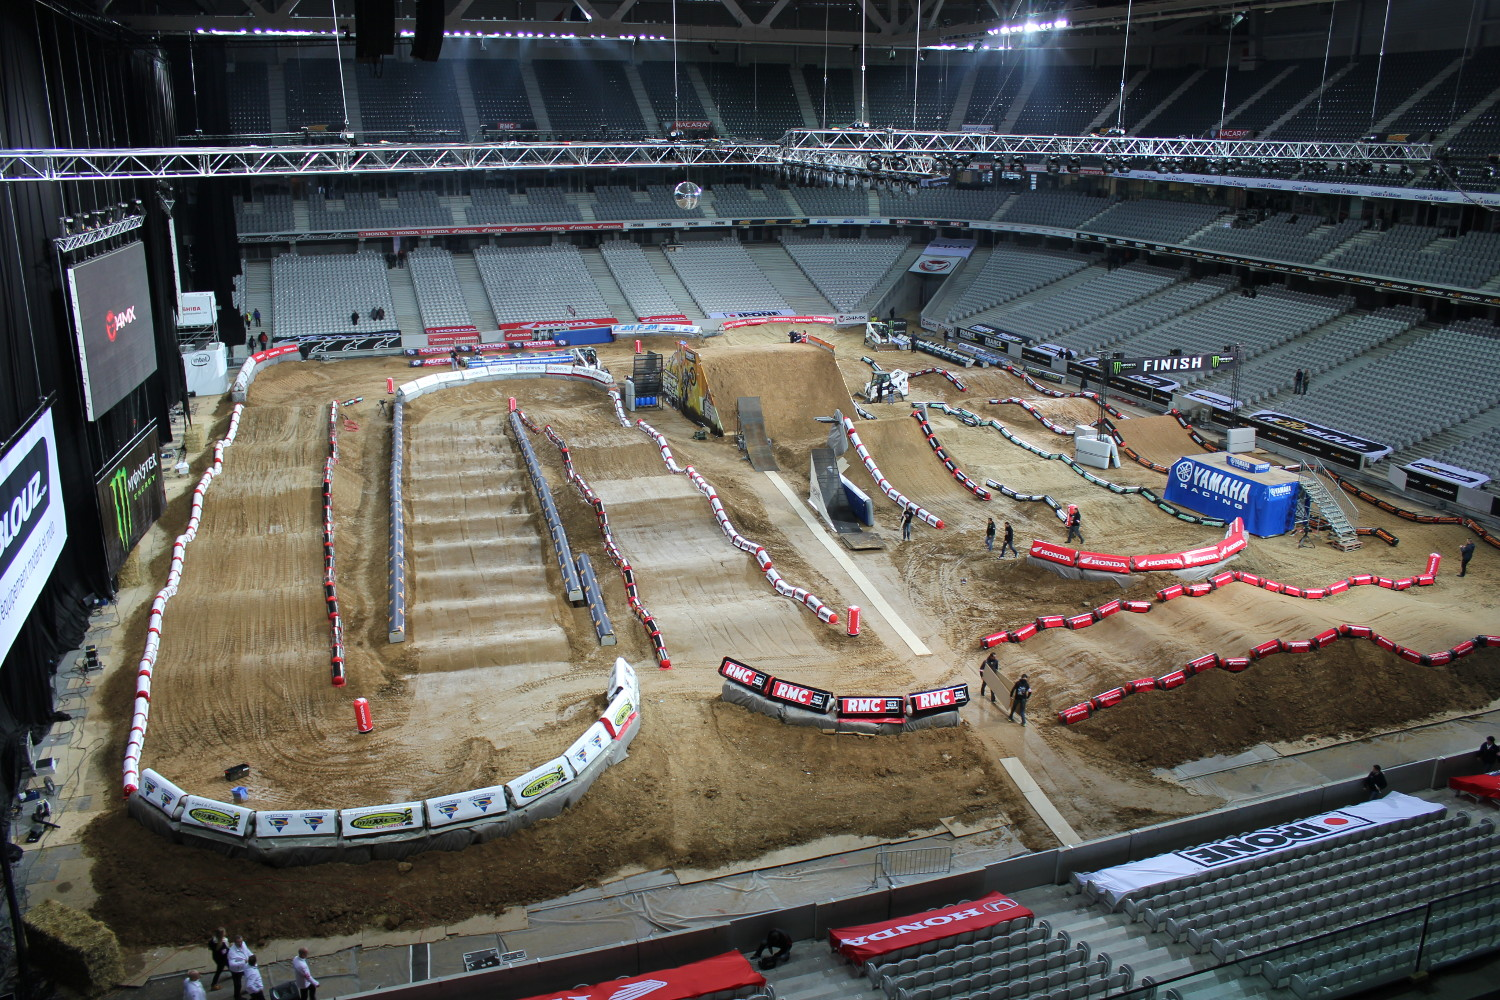 Aperçu global du terrain du Supercross